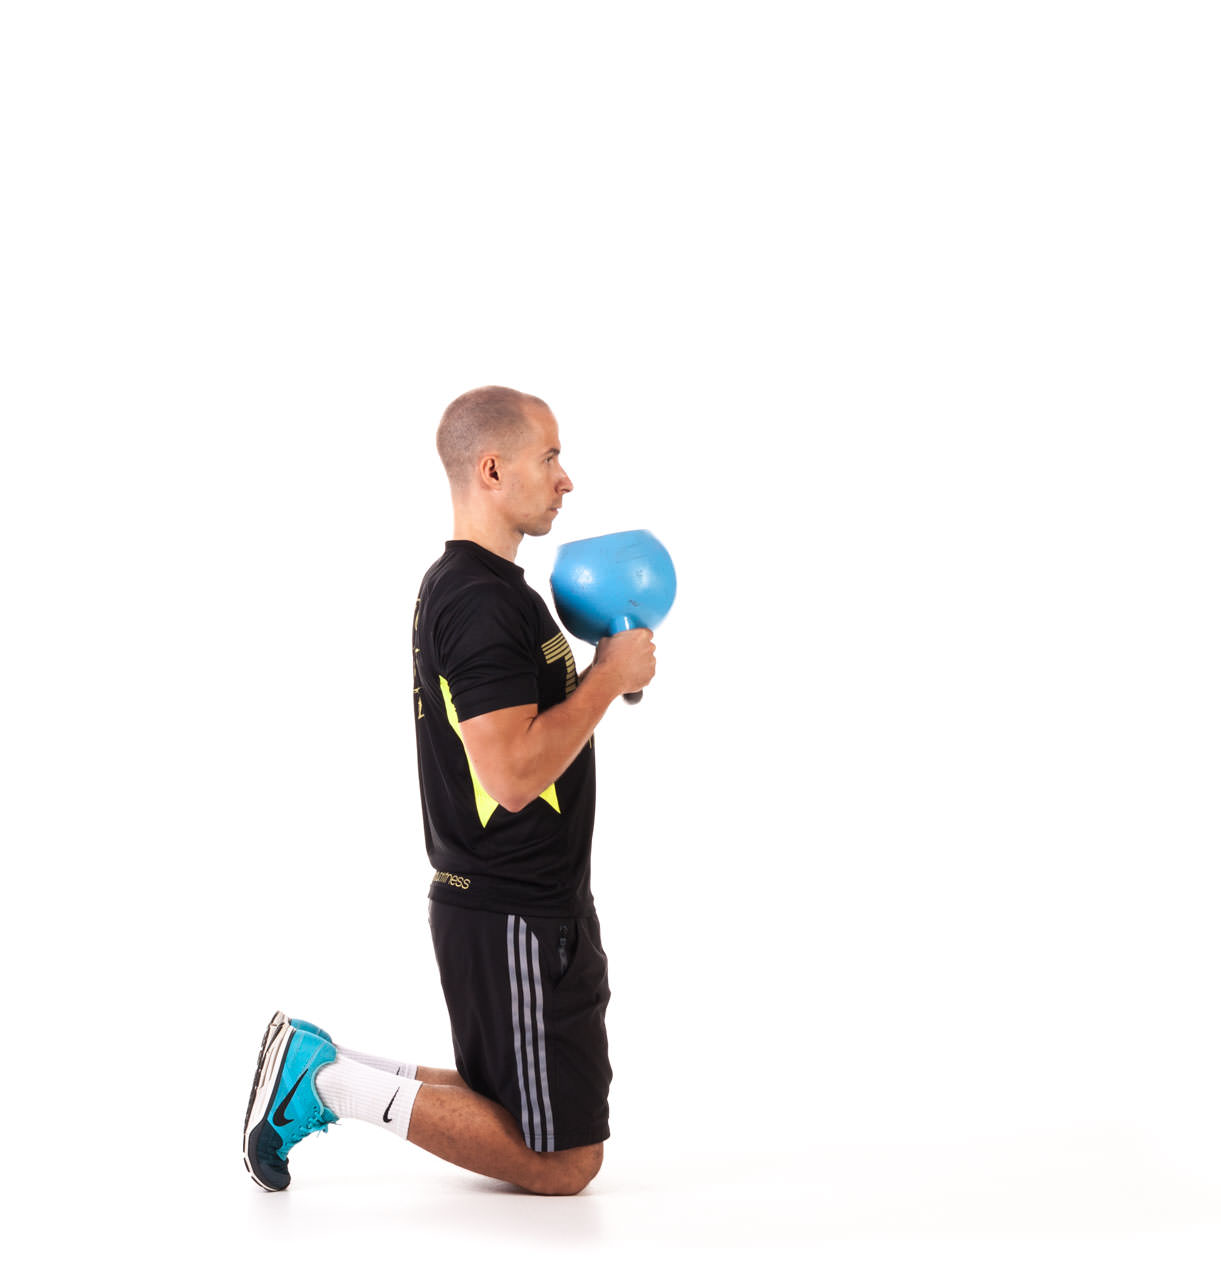 Kettlebell Kneeling to Stand Up frame #1